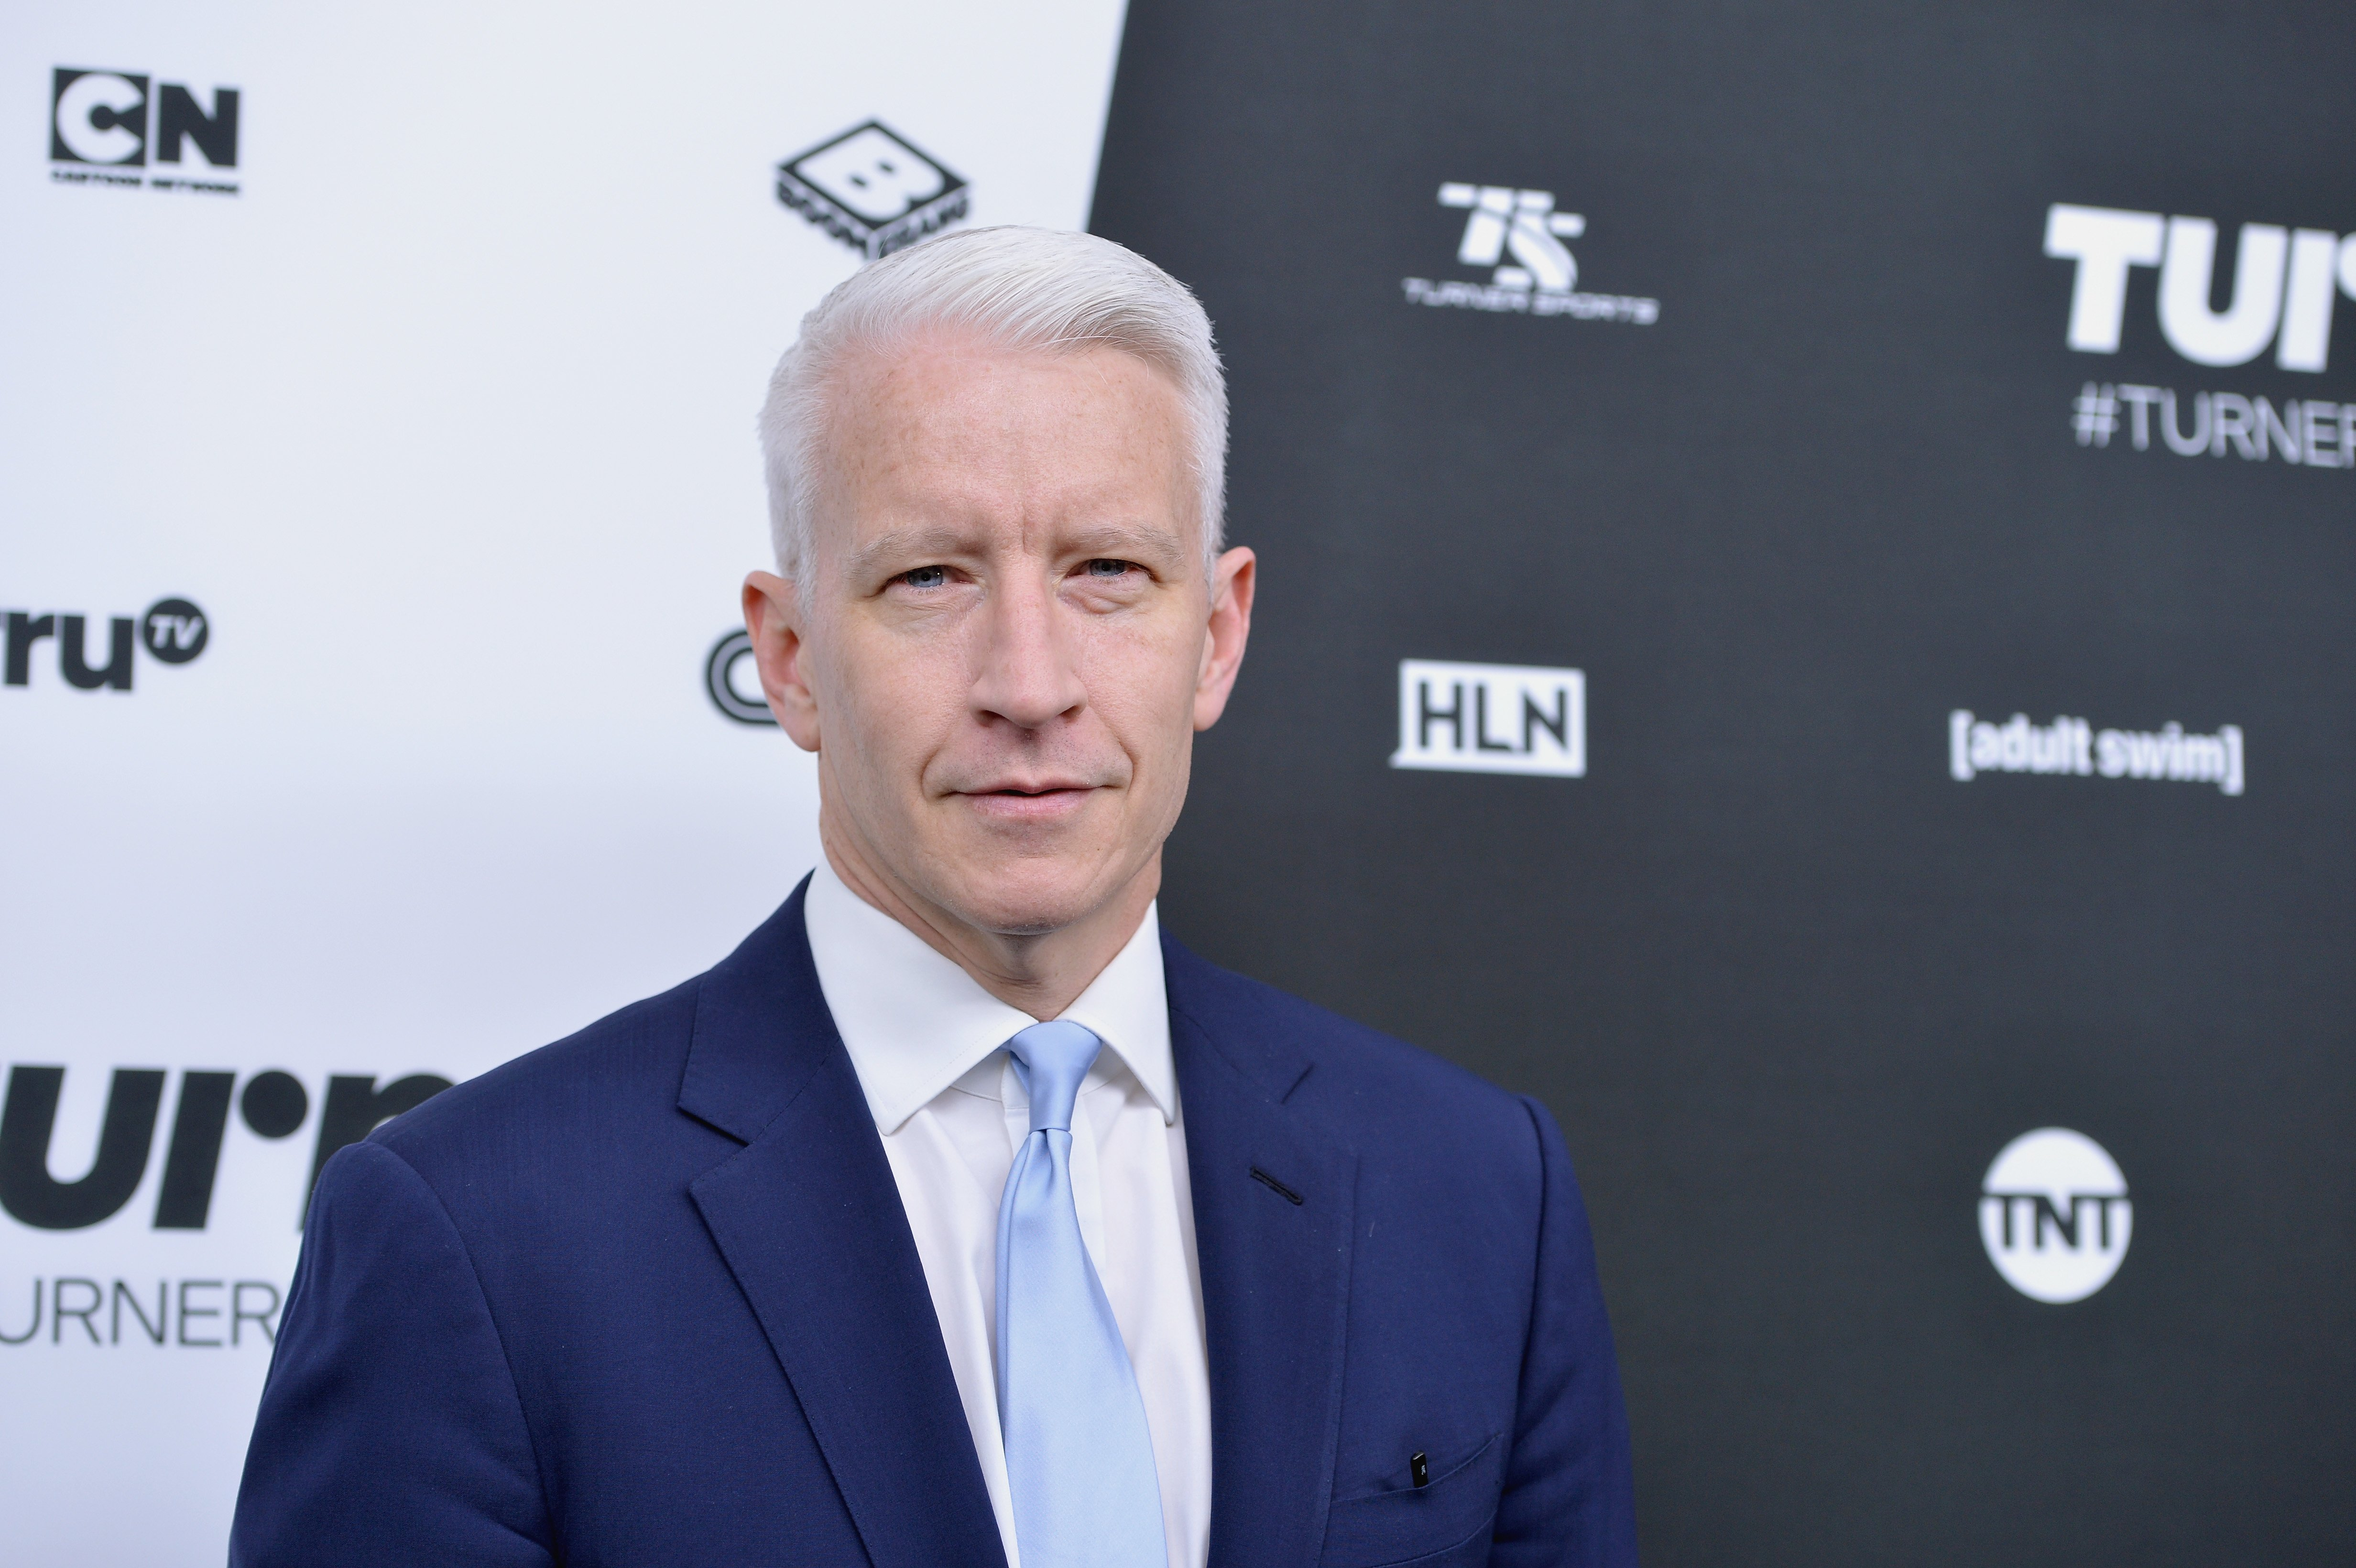 Anderson Cooper pictured at the Turner Upfront 2016 at Nick & Stef's Steakhouse, 2016, New York City. | Photo: Getty Images